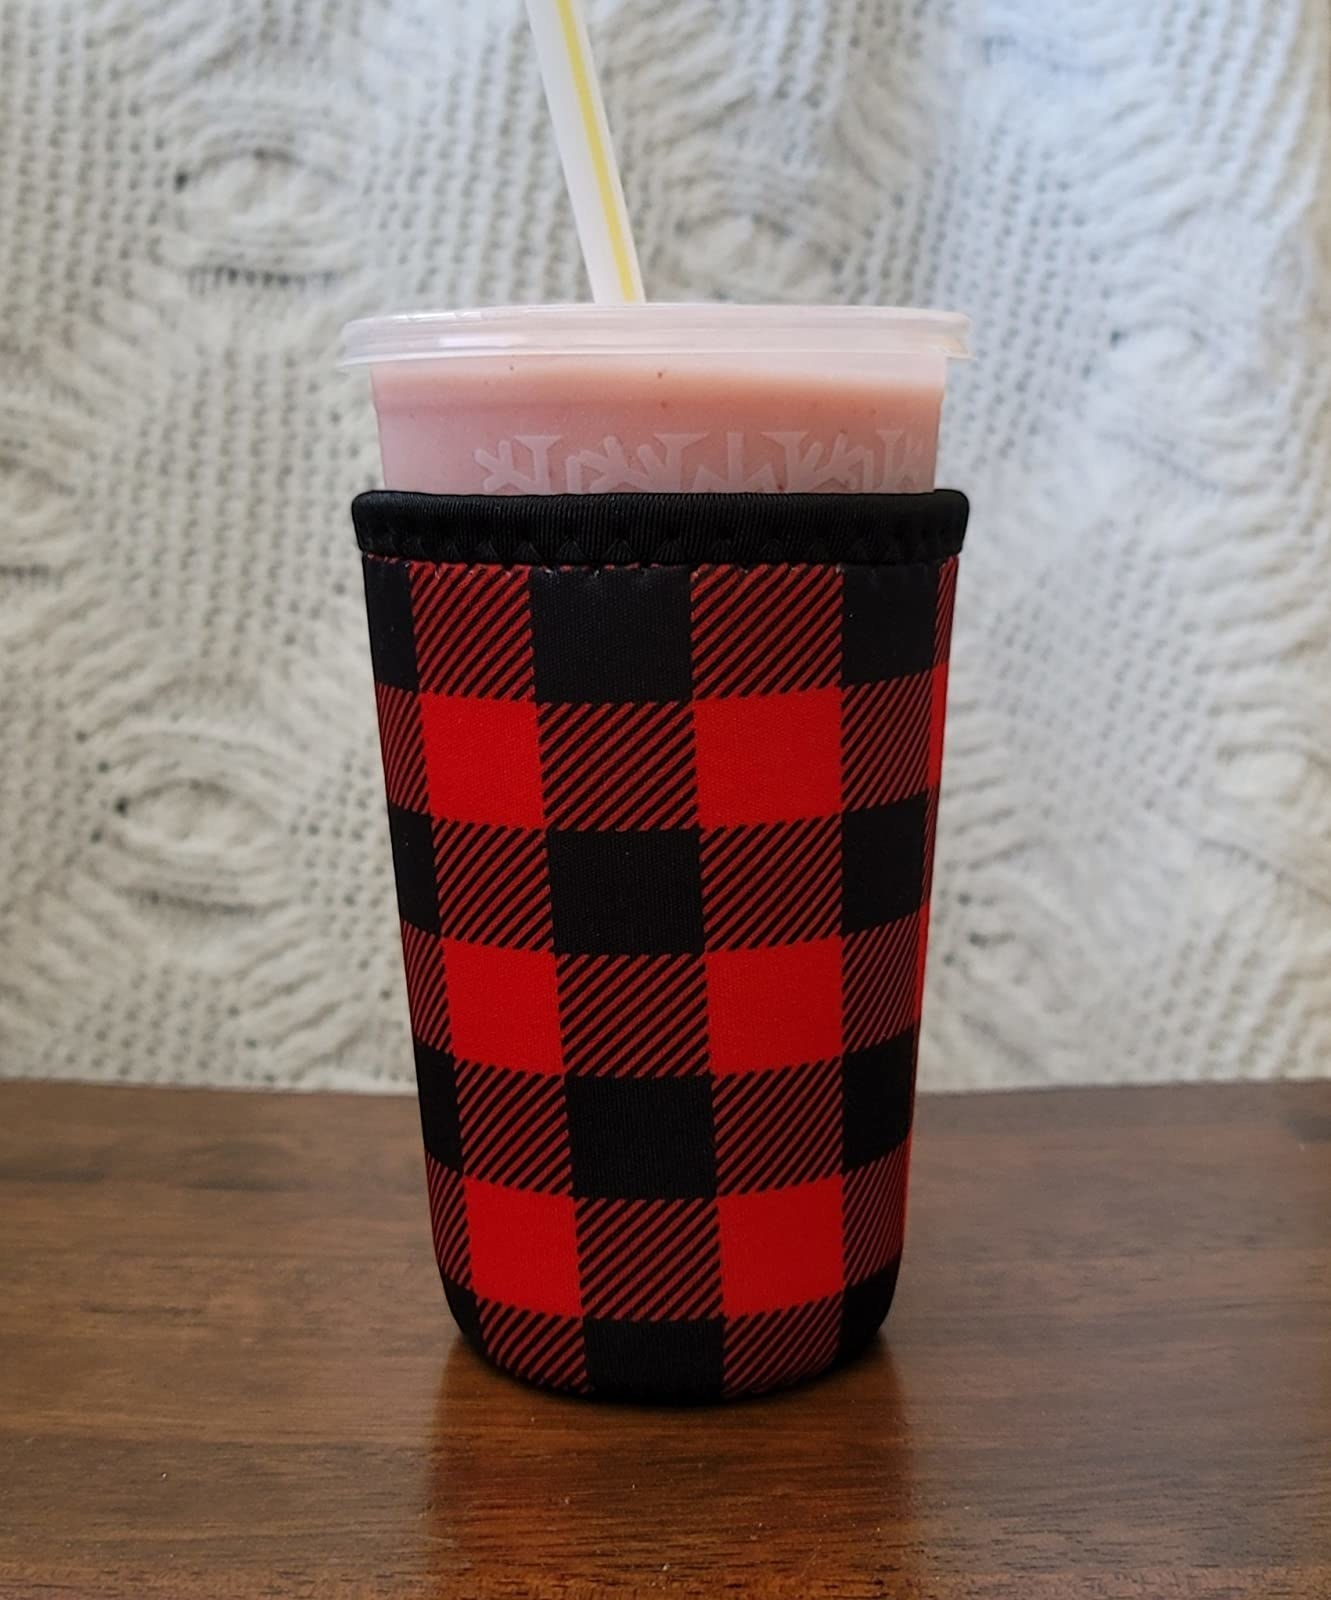 A smoothie in the koozie